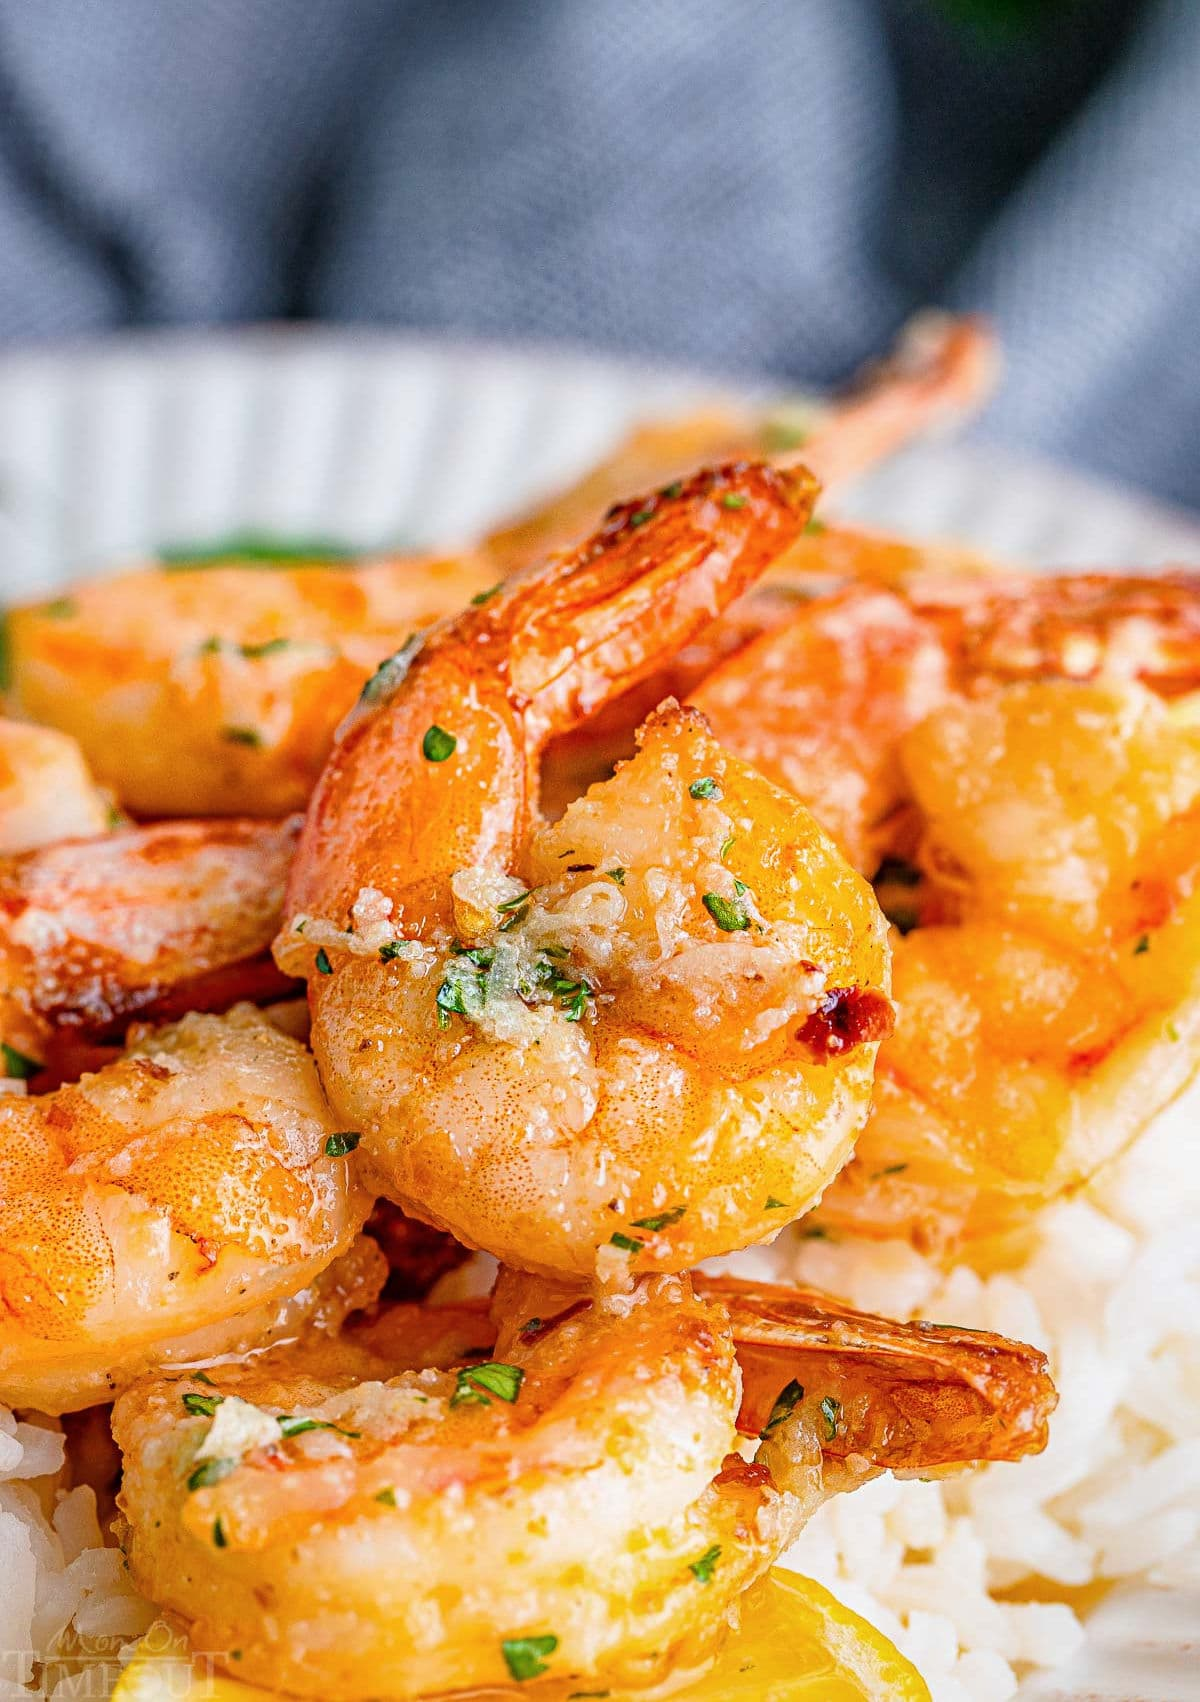 close up look at large shrimp cooked in air fryer topped with a garlic butter sauce sitting on a bed of white rice.